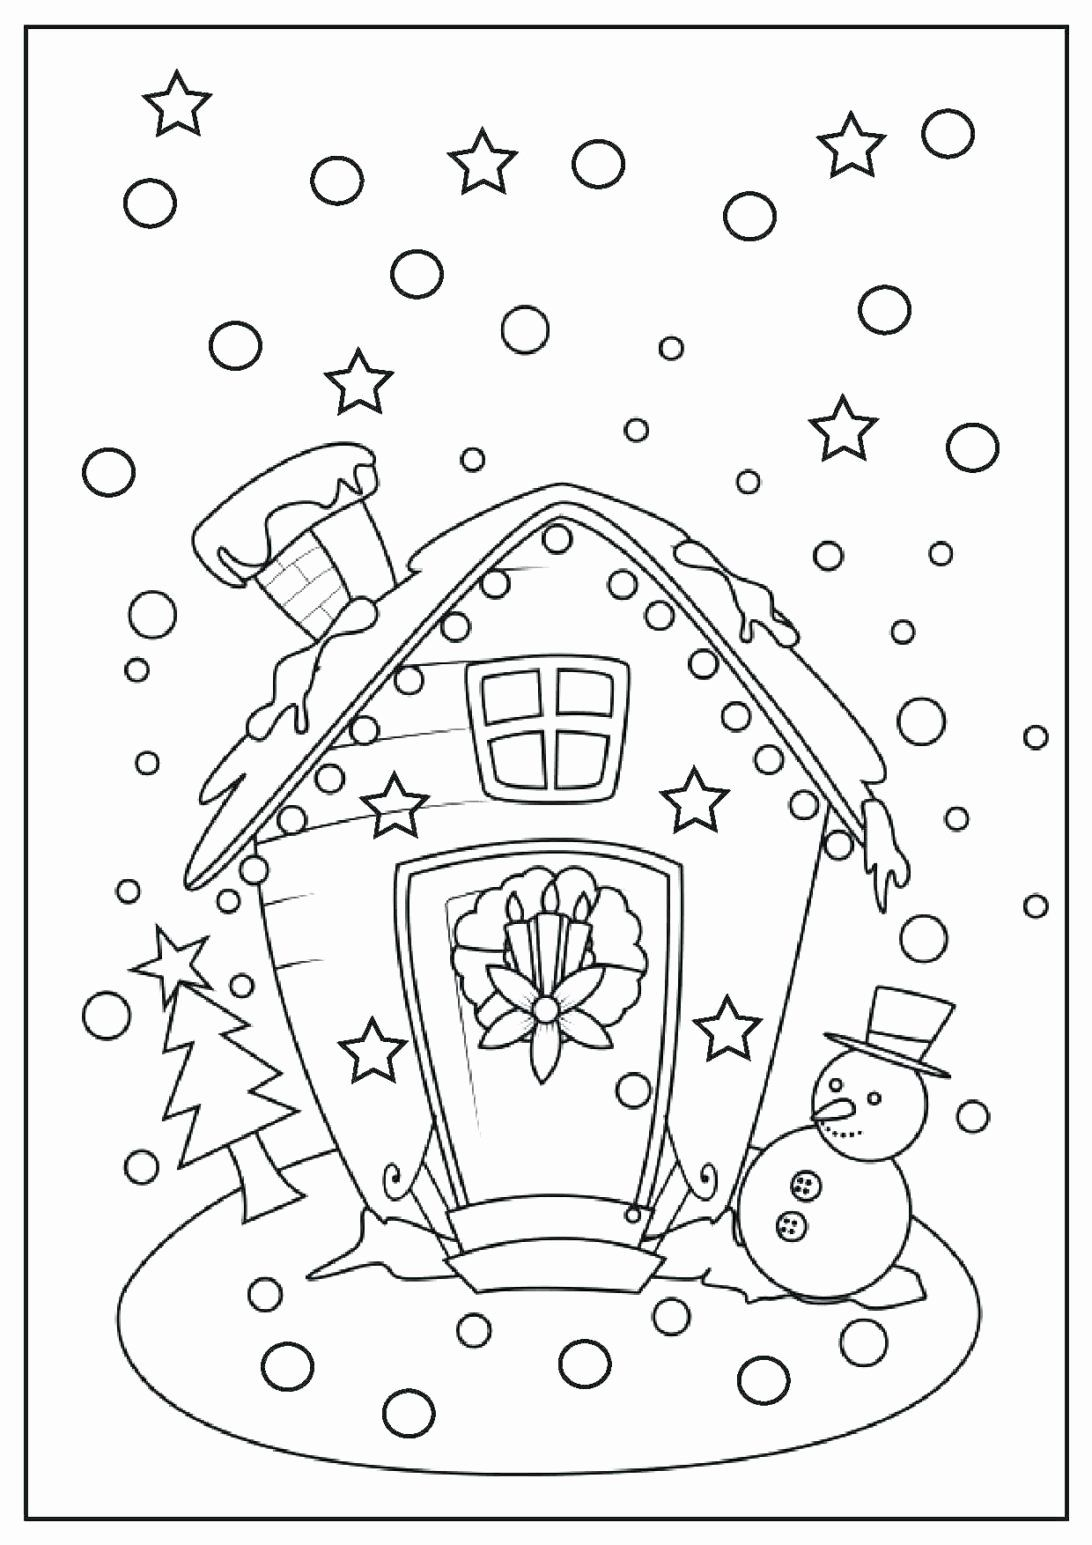 Coloring Stencils for Adults Lovely Coloring Pages Crayola